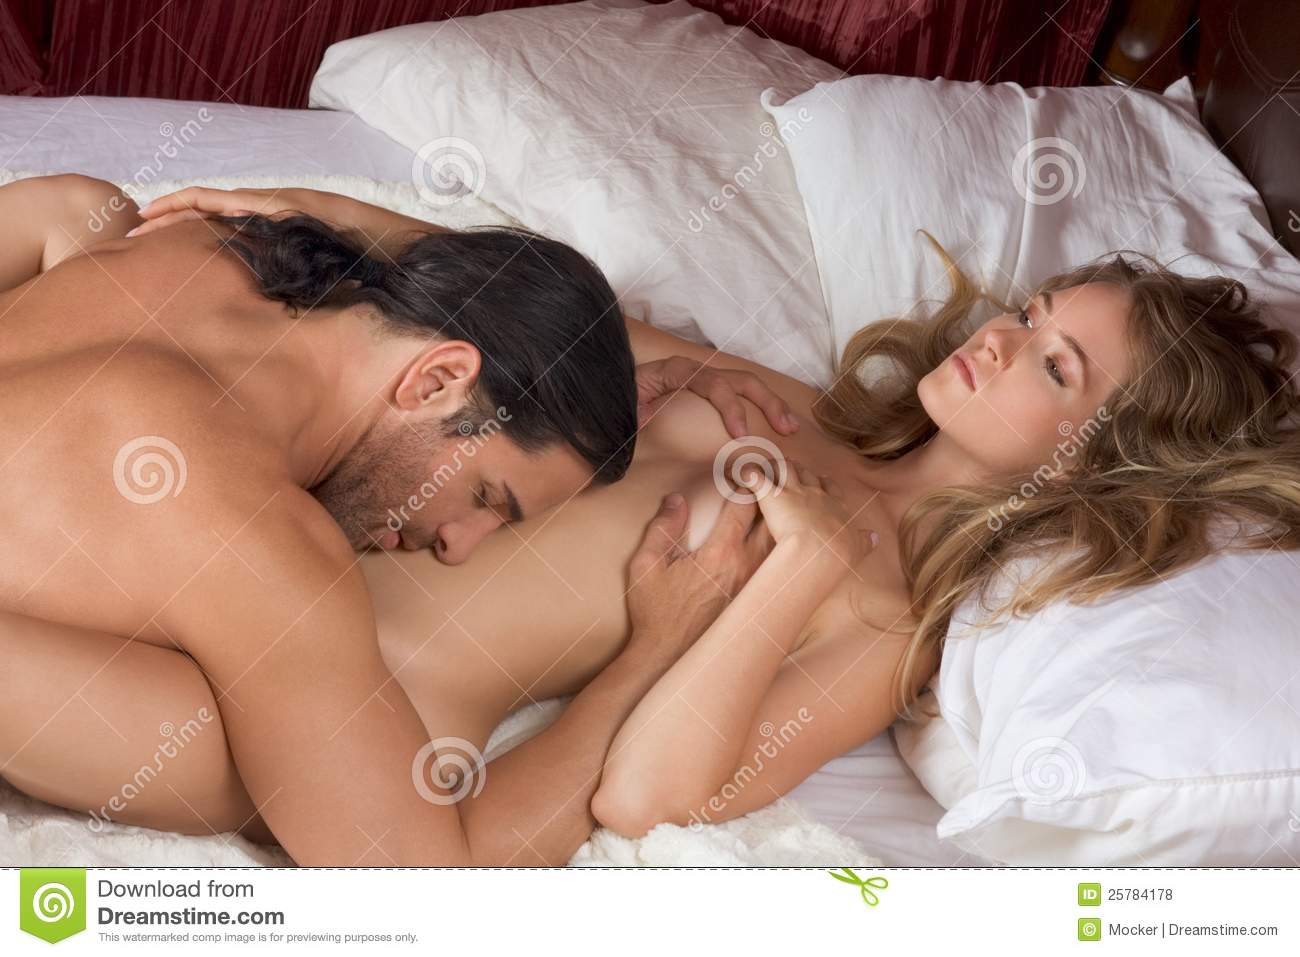 Hot couple sex on bed